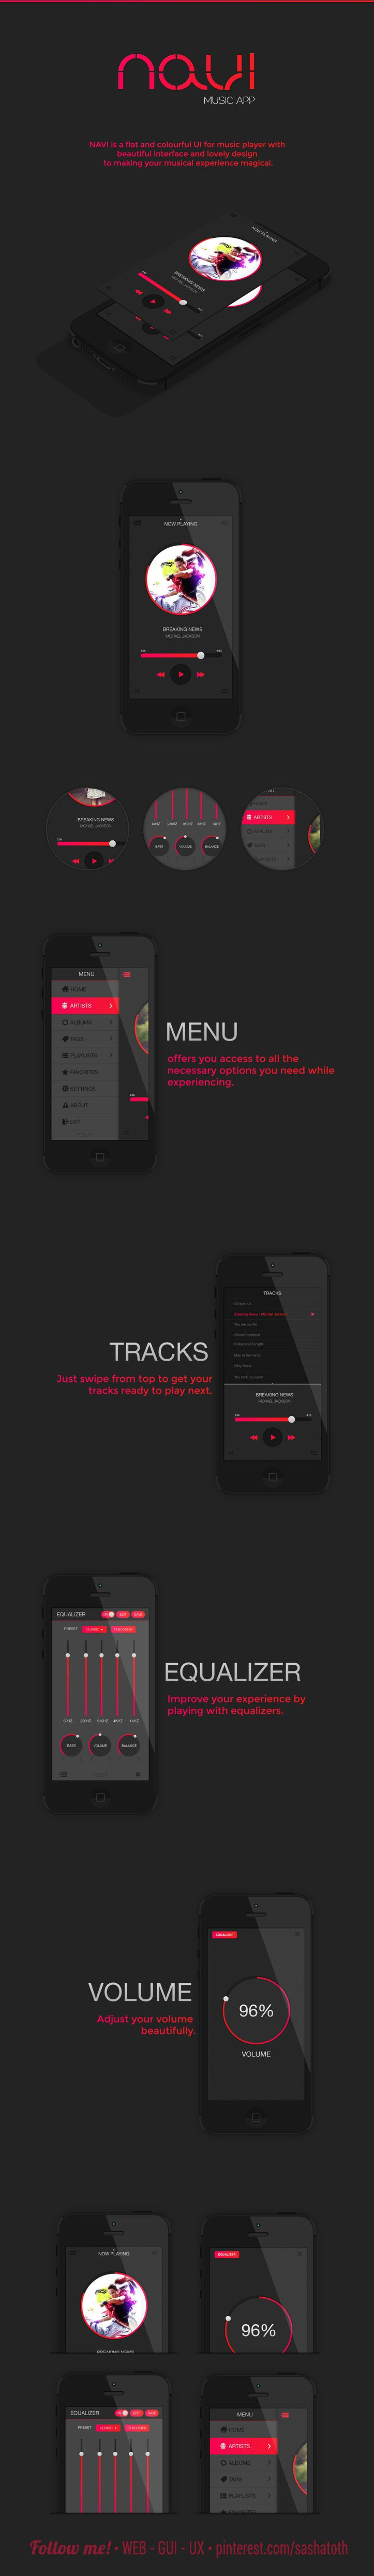 NAVI - Music App by Mansoor MJ, via Behance *** NAVI is a flat and colourful UI for music player with  beautiful interface and lovely design  to making your musical experience magical. *** #app #gui #ui #behance